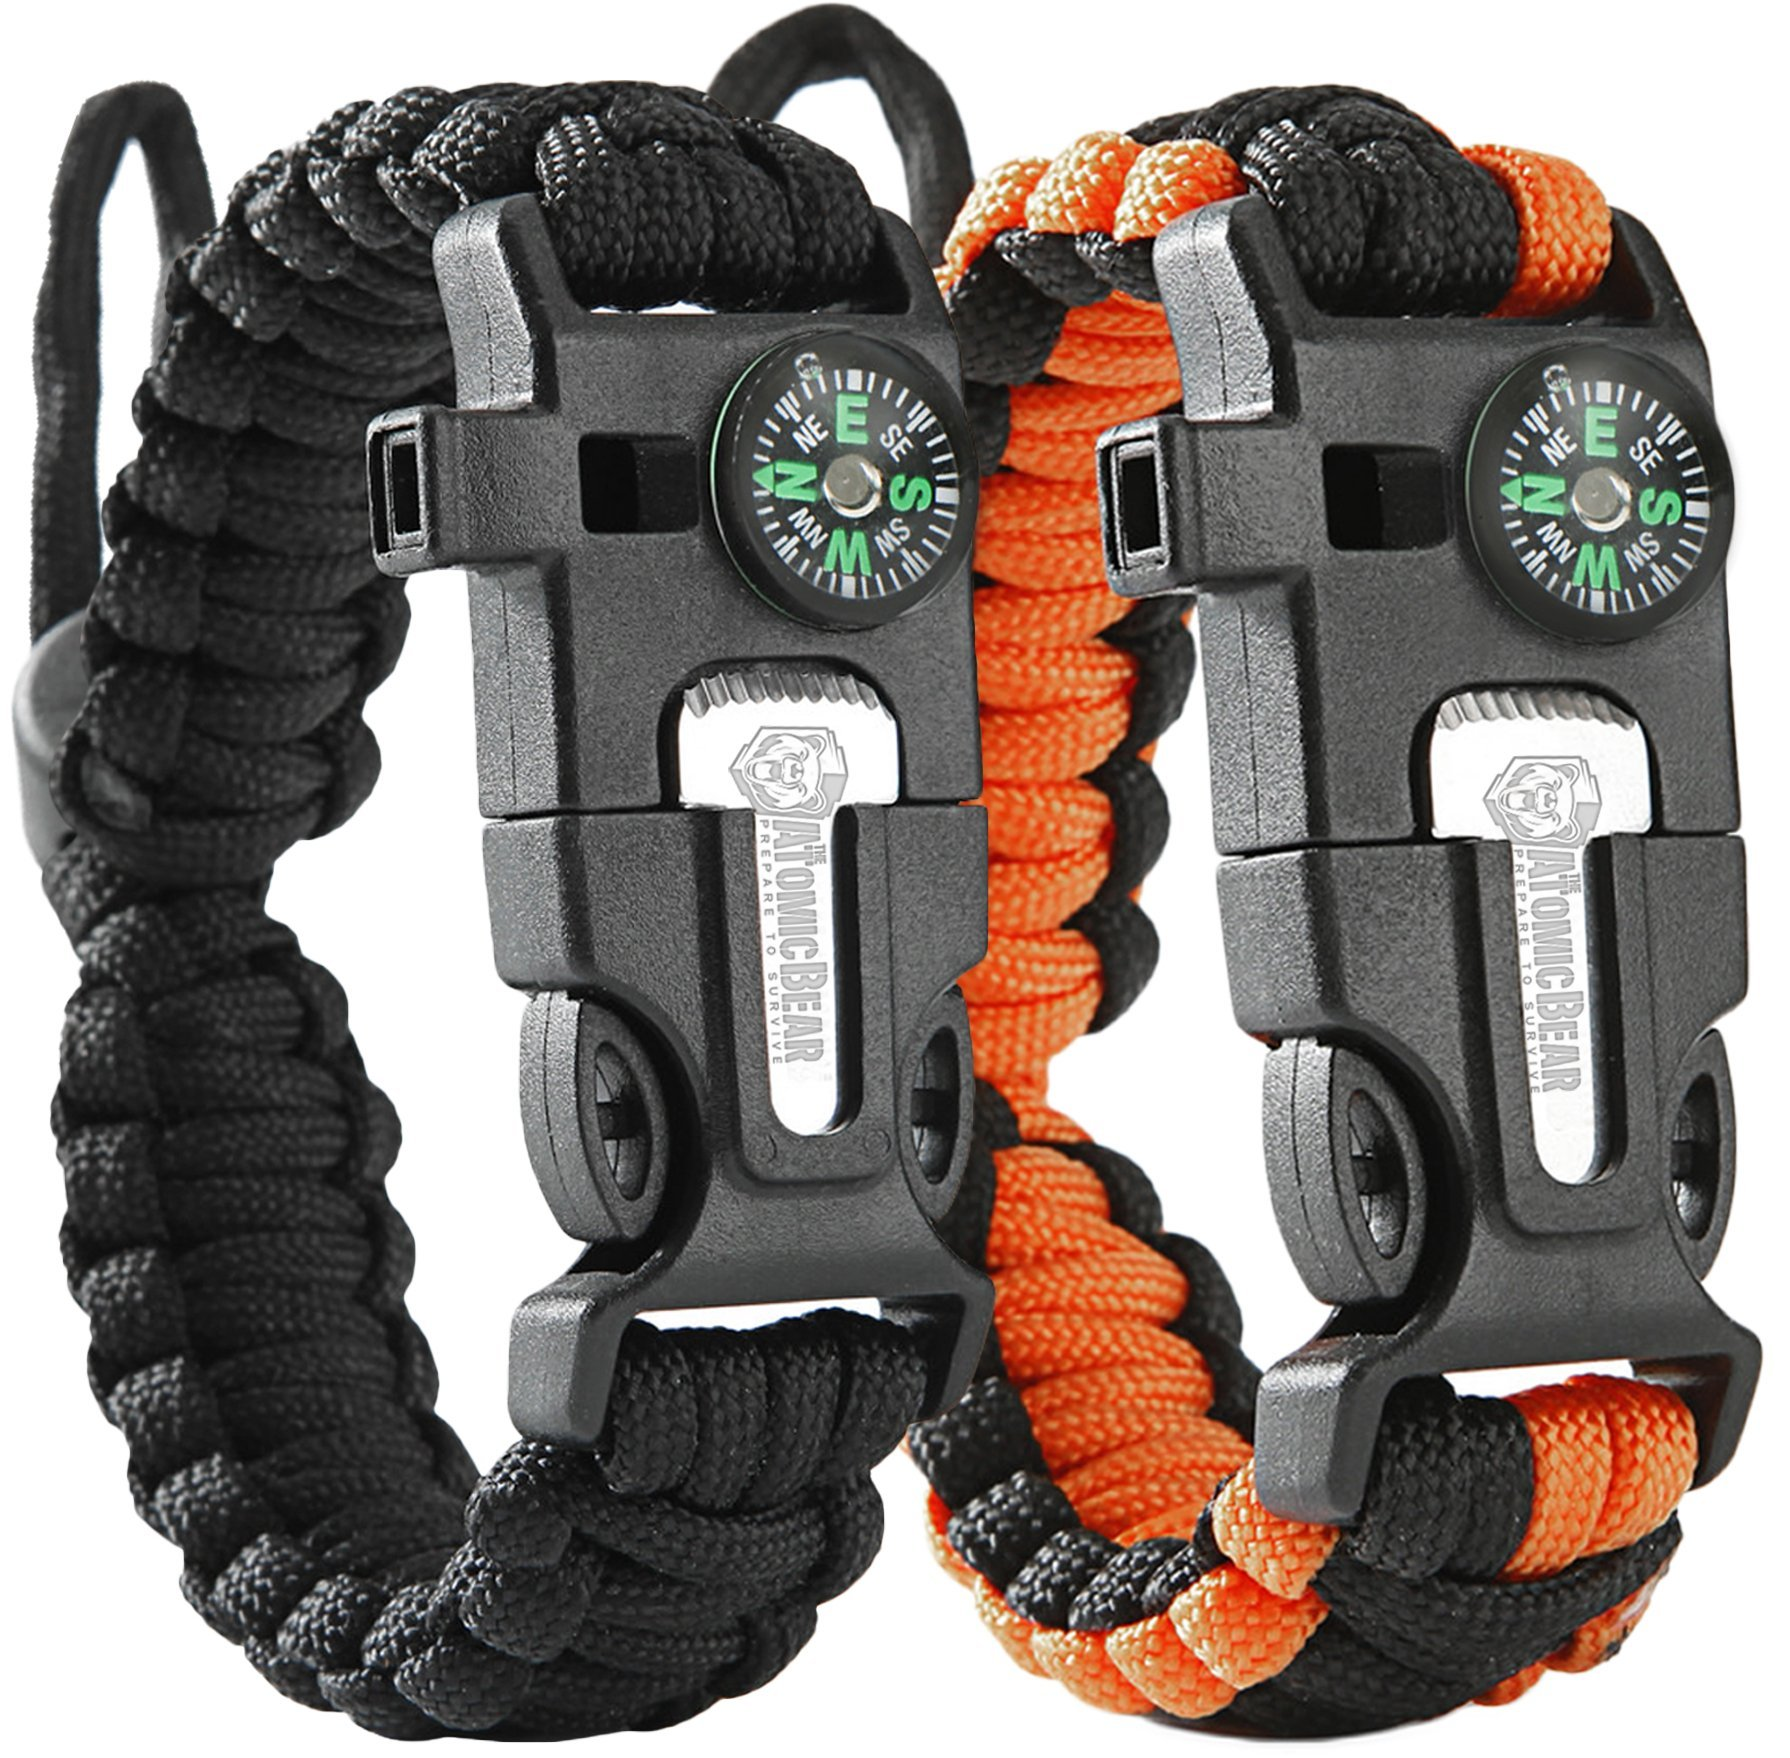 ATOMIC BEAR Paracord Bracelet (2 pack) – Adjustable Size – Fire Starter – Loud Whistle – Emergency Knife – Perfect for Hiking, Camping, Fishing and Hunting – Black & Black+Orange by ATOMIC BEAR